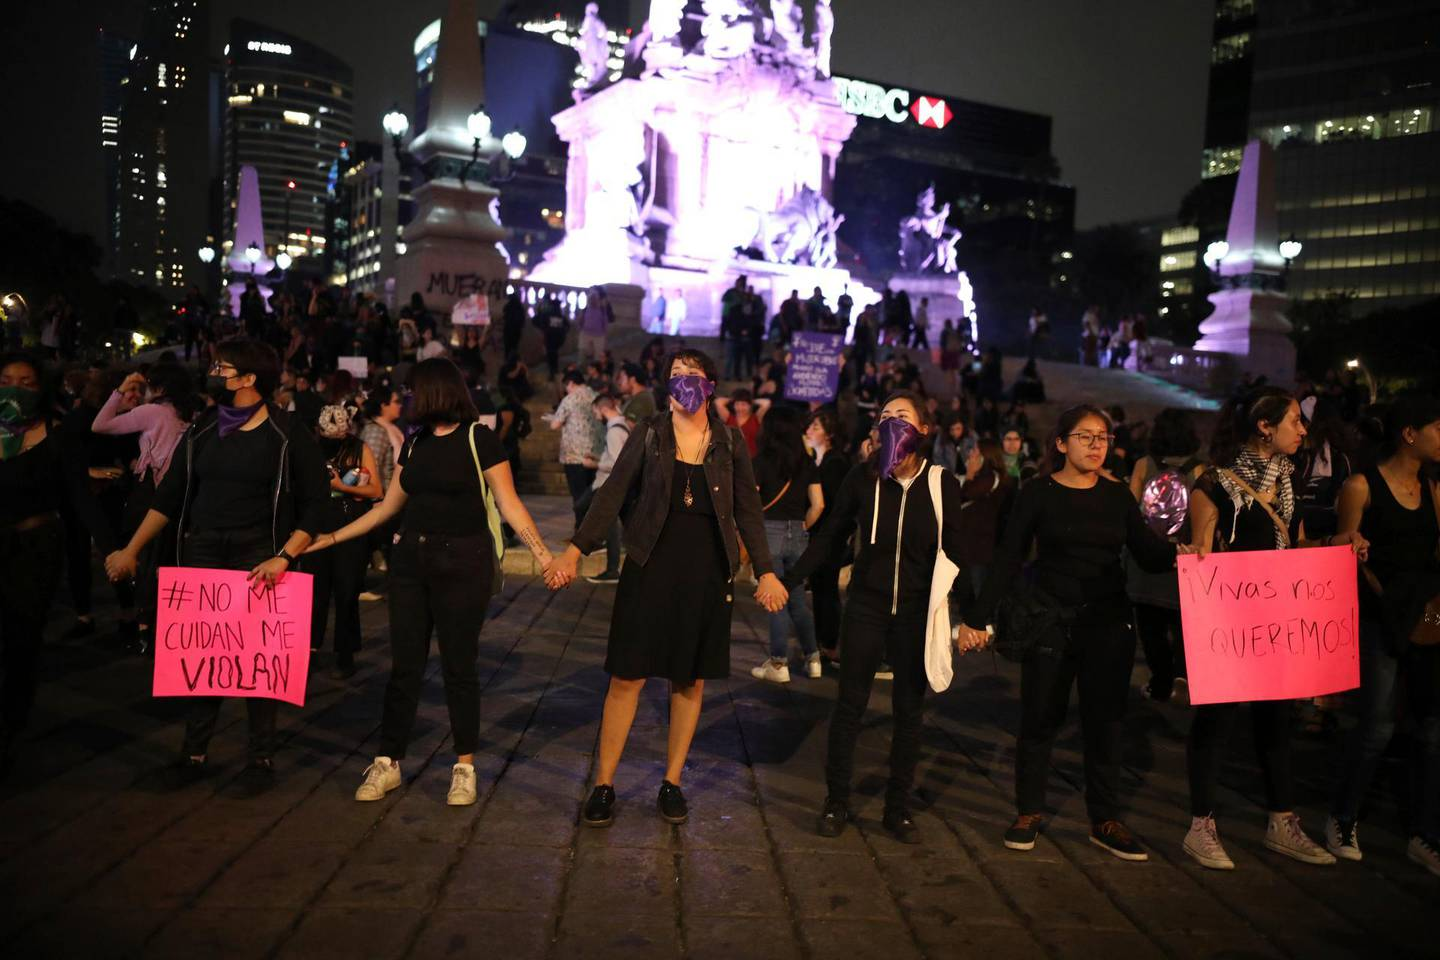 Women holds hands demanding justice and for their safety, during a protest sparked by a string of alleged sexual attacks by police officers, in Mexico City, Friday, Aug. 16, 2019. On Friday, hundreds of women demonstrated largely peacefully in downtown Mexico City. This week, an auxiliary policeman was held for trial on charges he raped a young female employee at a city museum. (AP Photo/Marco Ugarte)